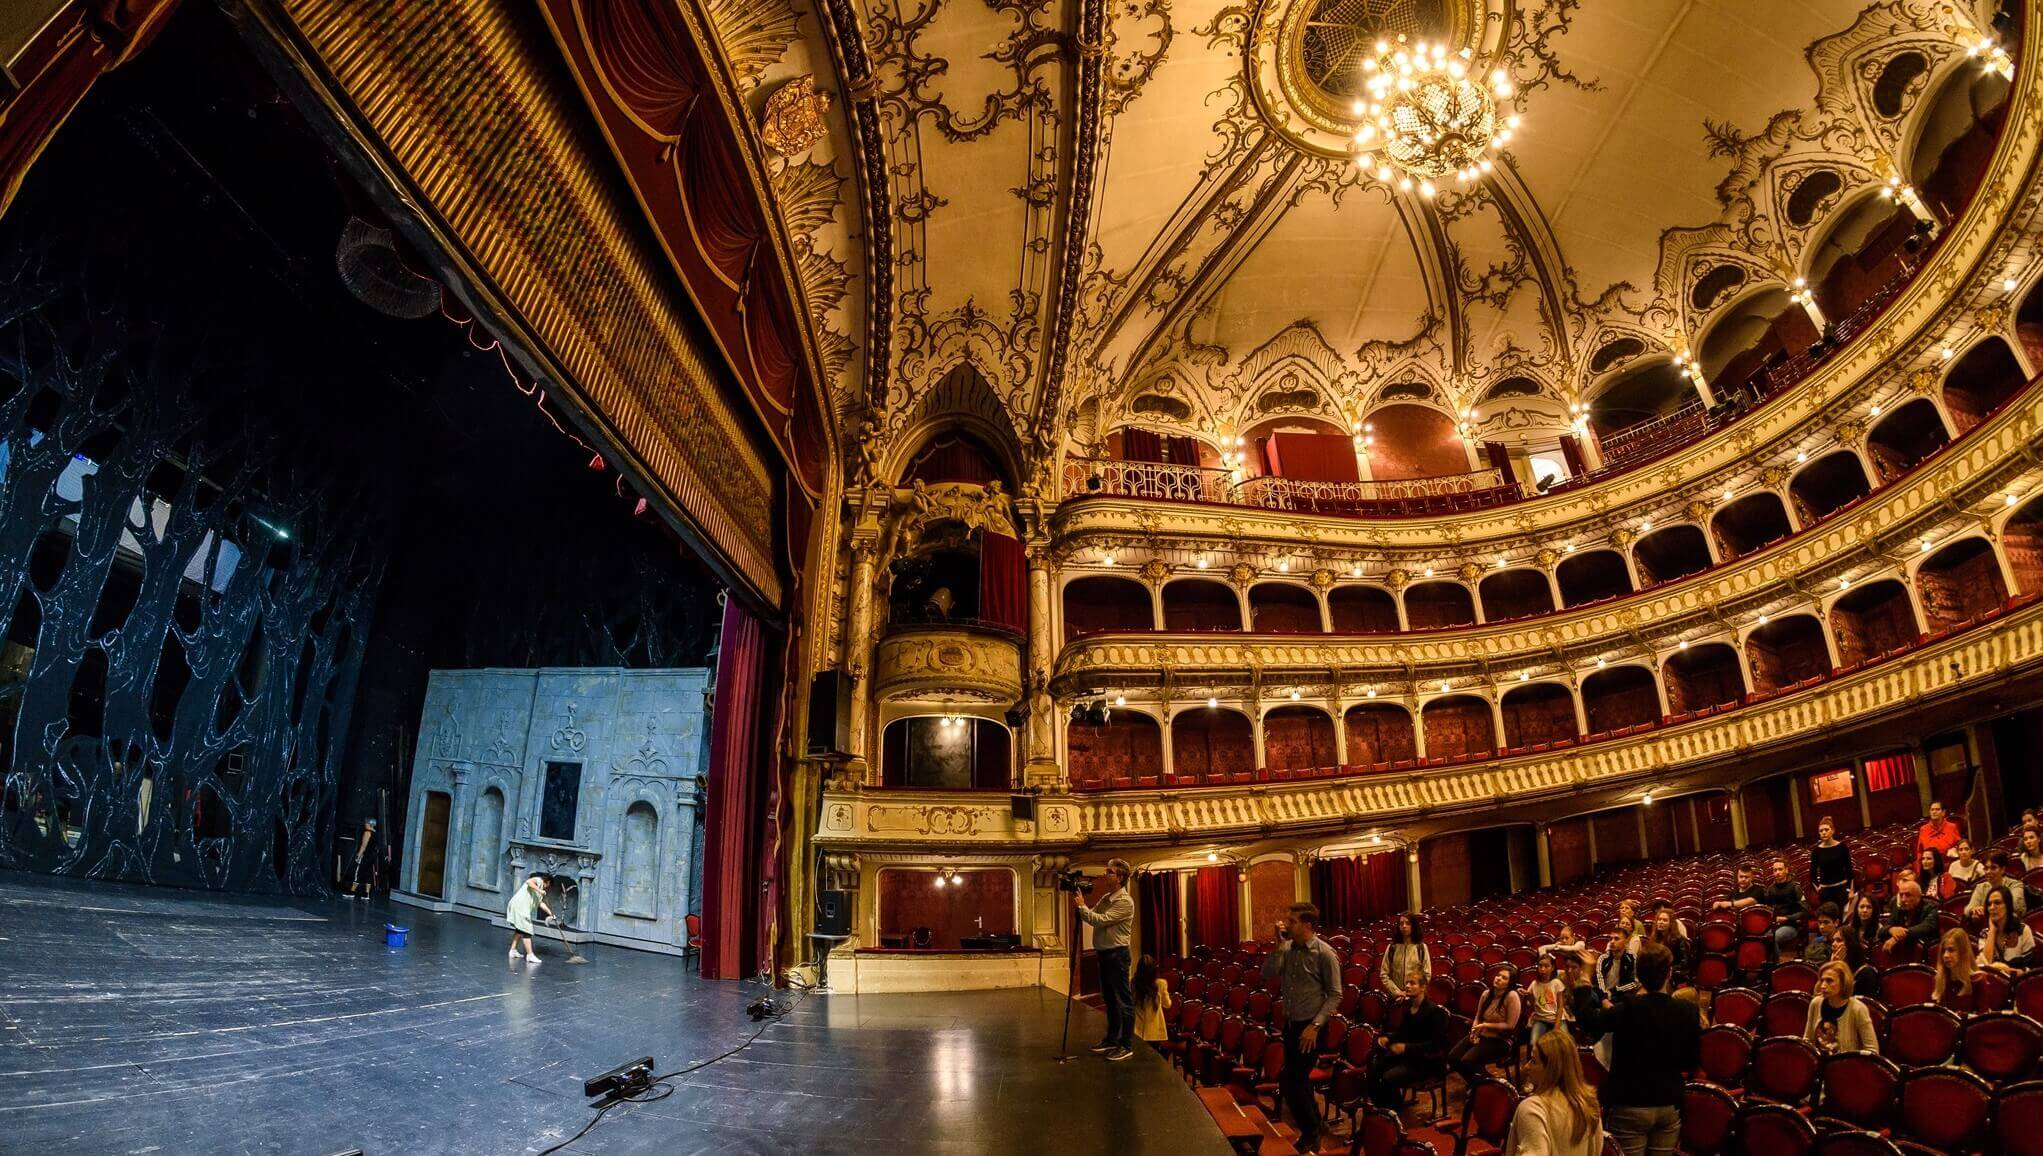 On the day of it's 100th celebration, our opera house has open its doors widely and revealed the curtain!